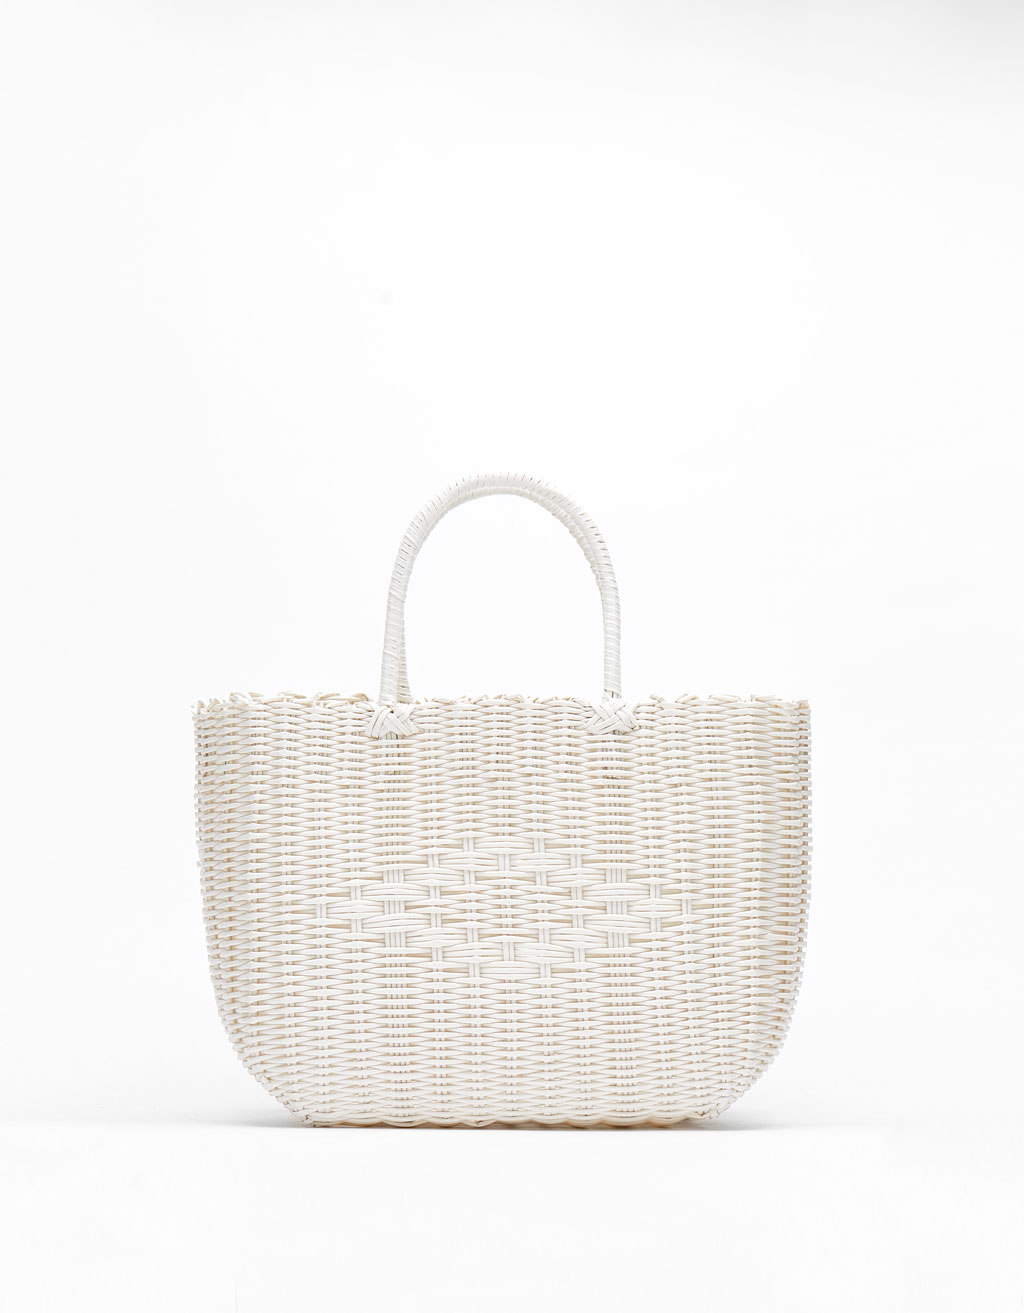 Basket-style tote bag